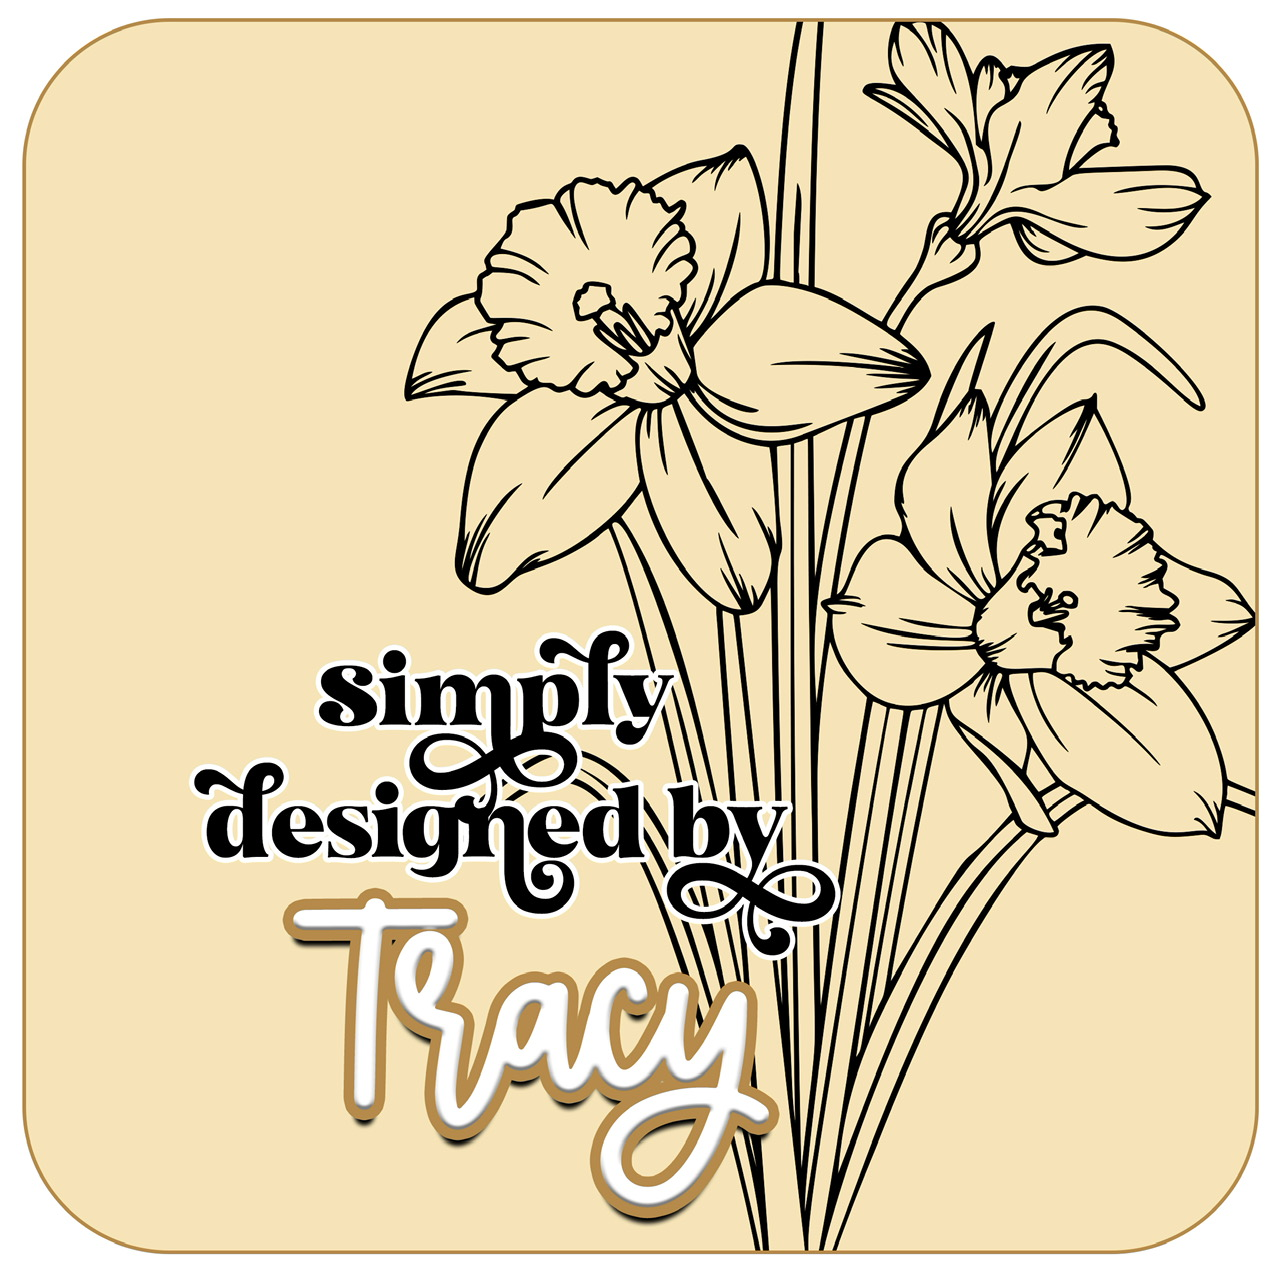 Simply designed by Tracy Adds To Her Range of Custom Signs and Items